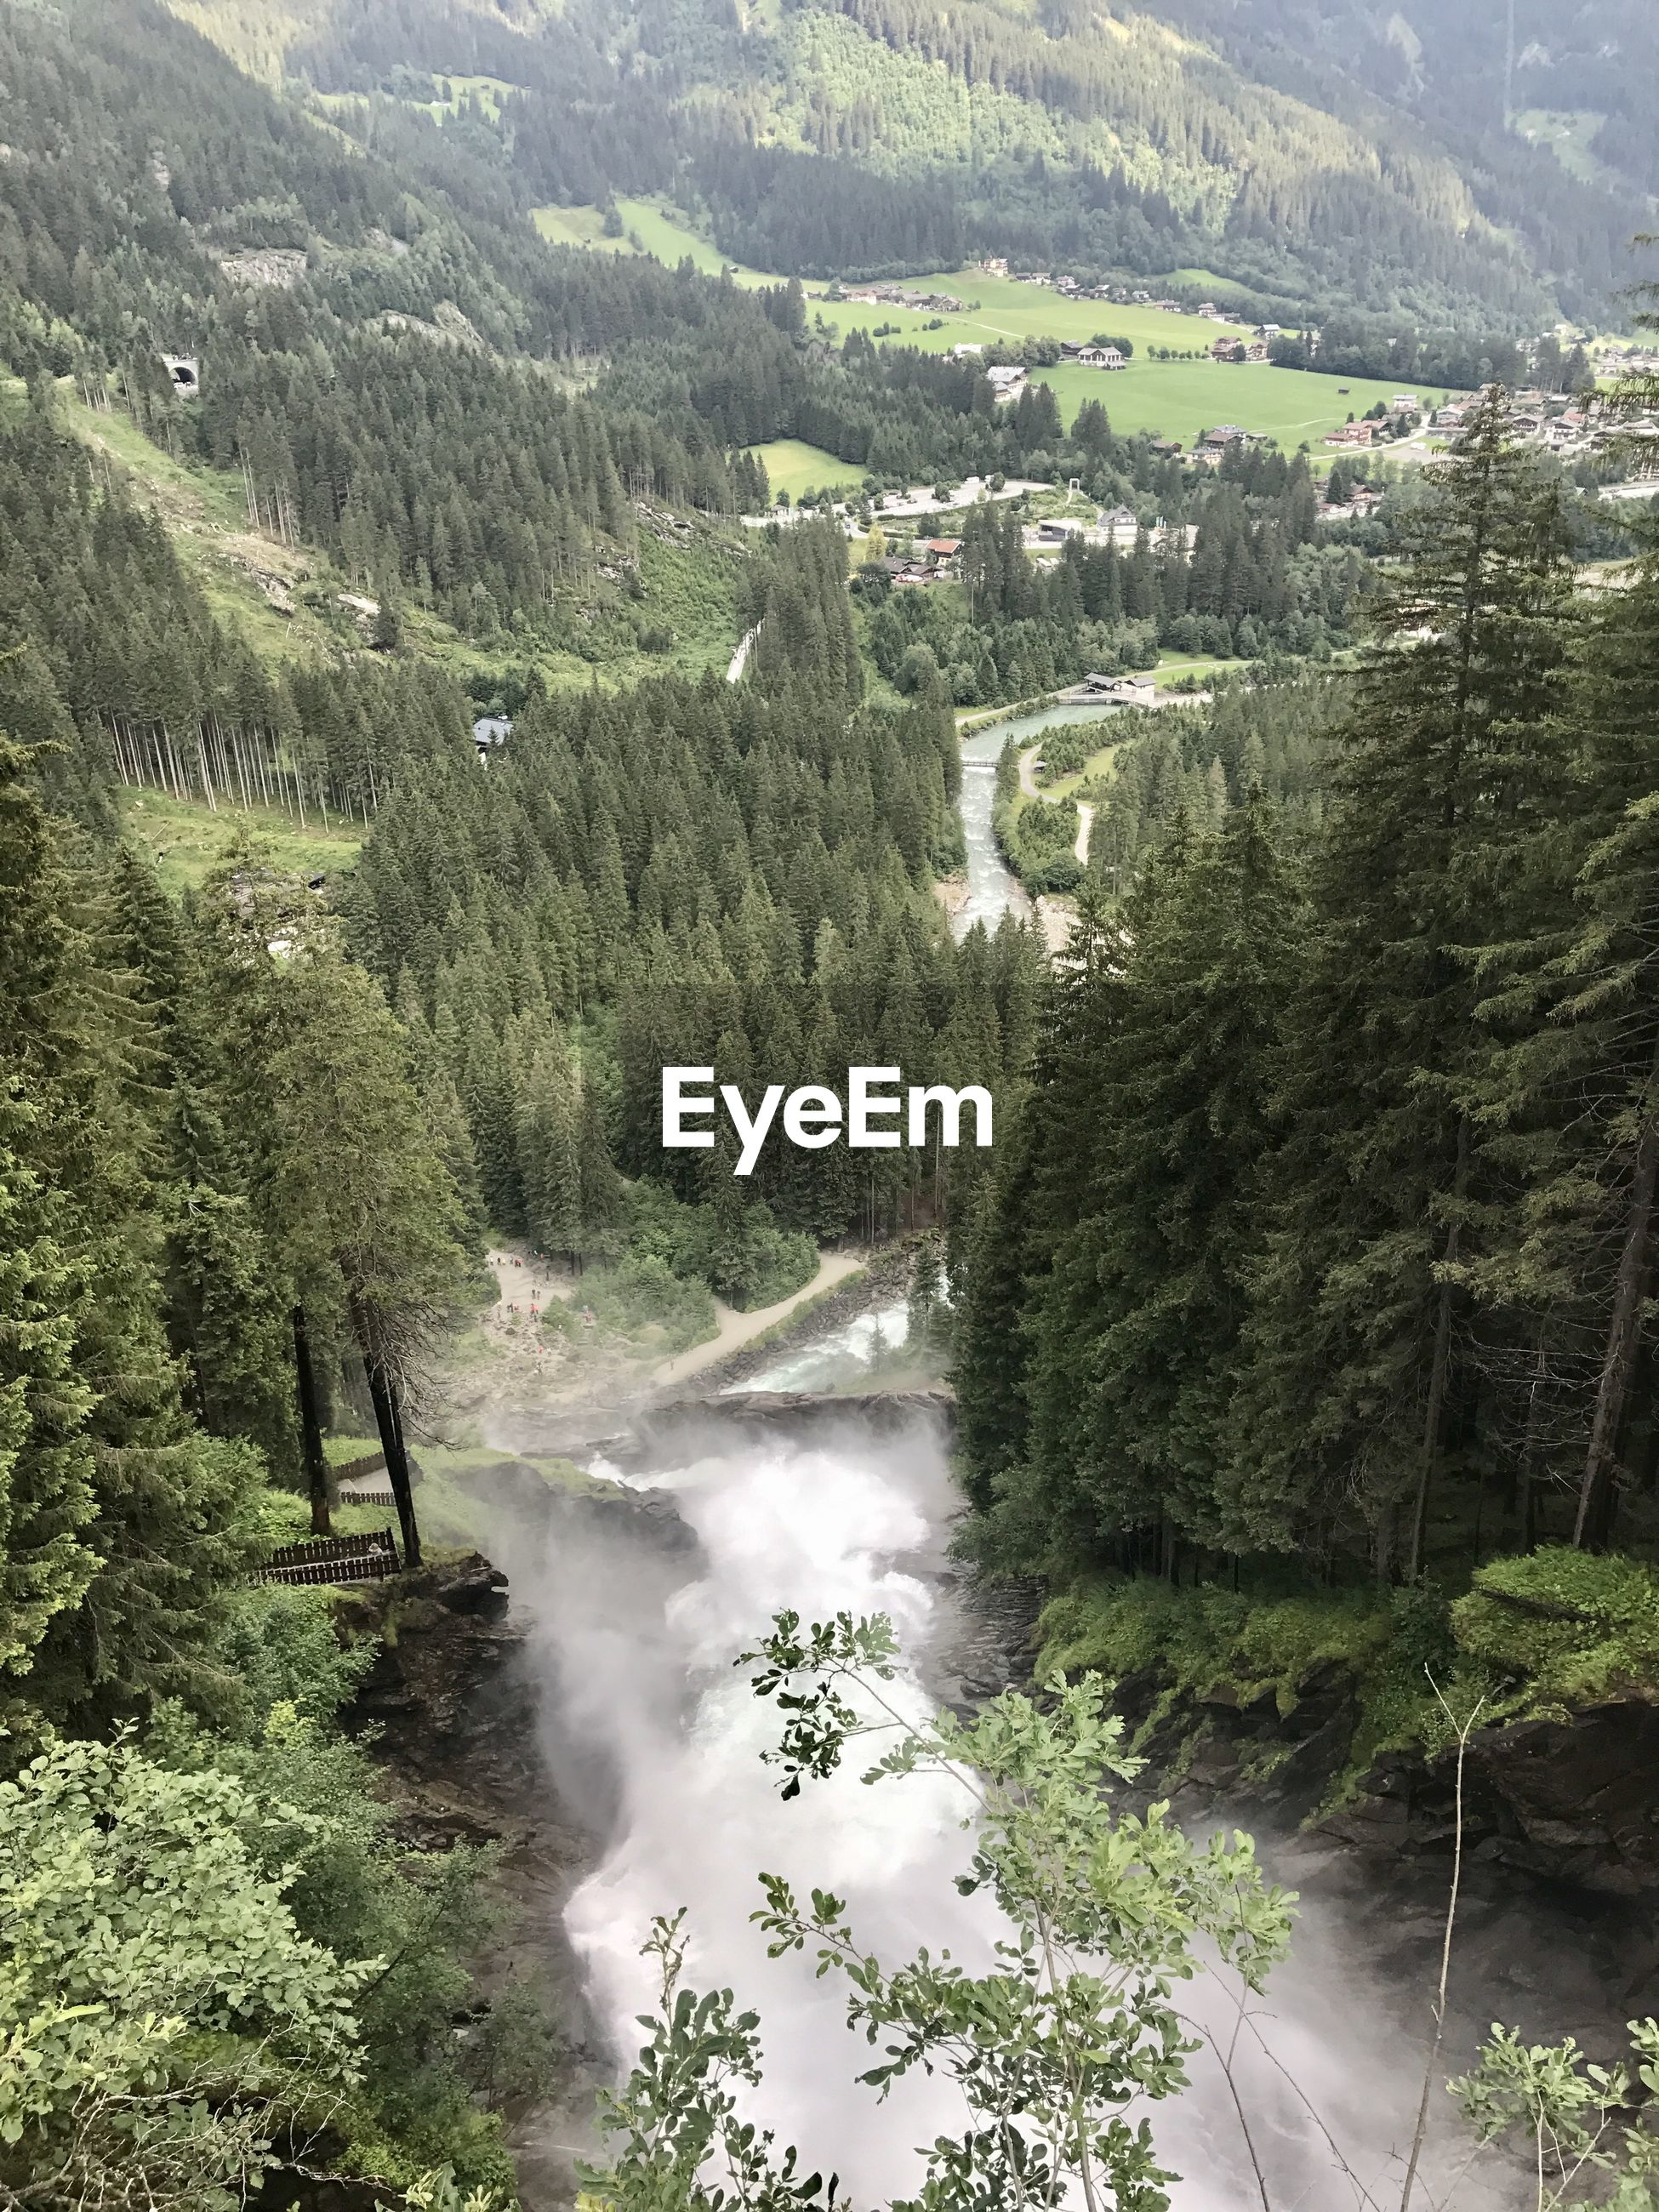 SCENIC VIEW OF RIVER AMIDST TREES AND FOREST